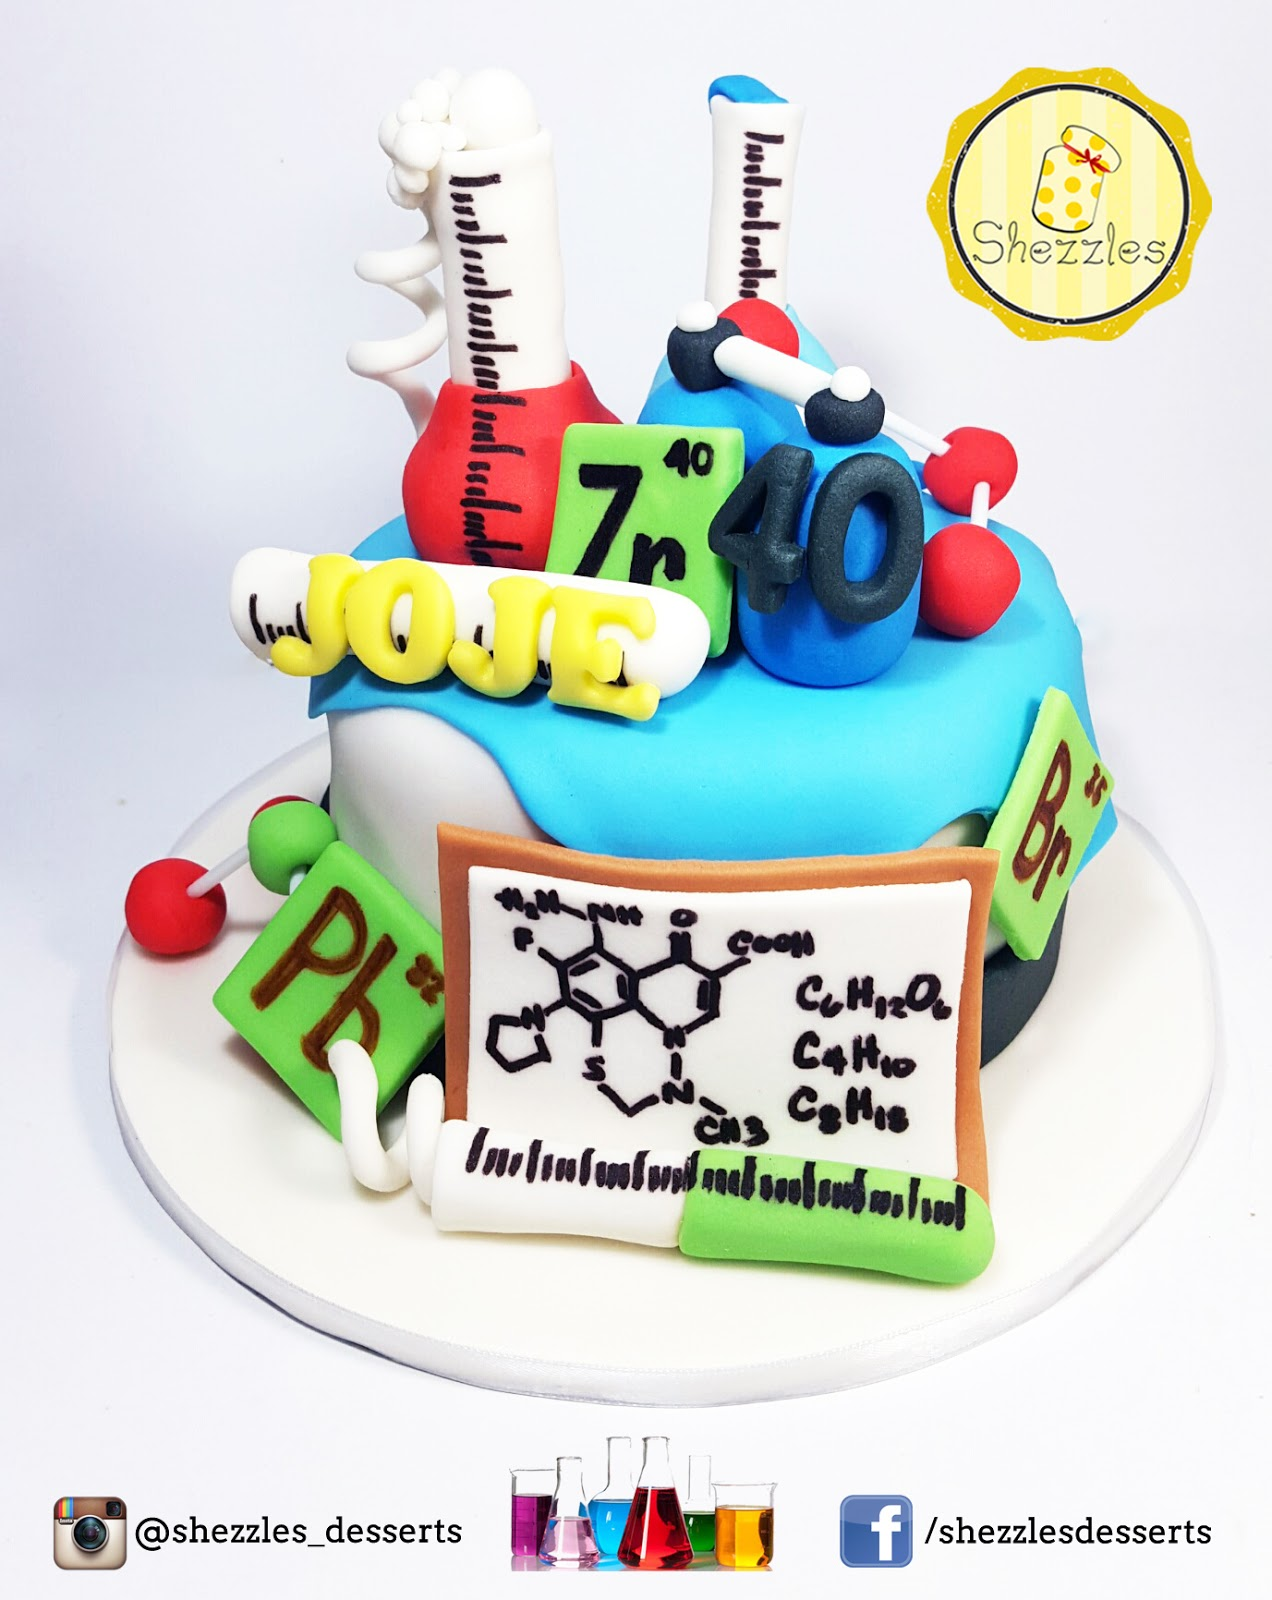 Shezzles dessert in a jar the chemists cake the chemists cake matter atoms periodic table gamestrikefo Choice Image